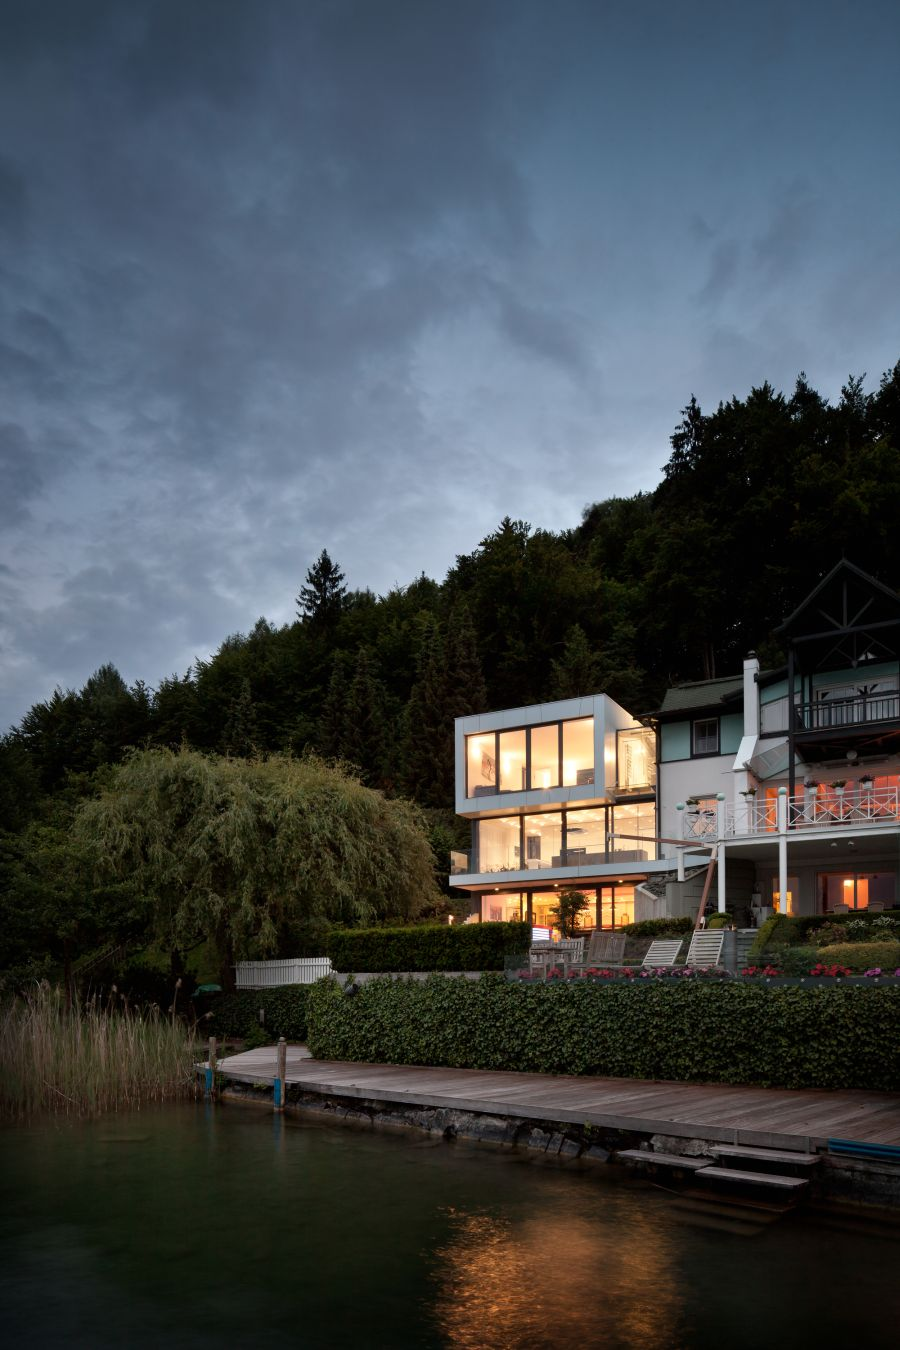 Gorgeous lakeside house after sunset